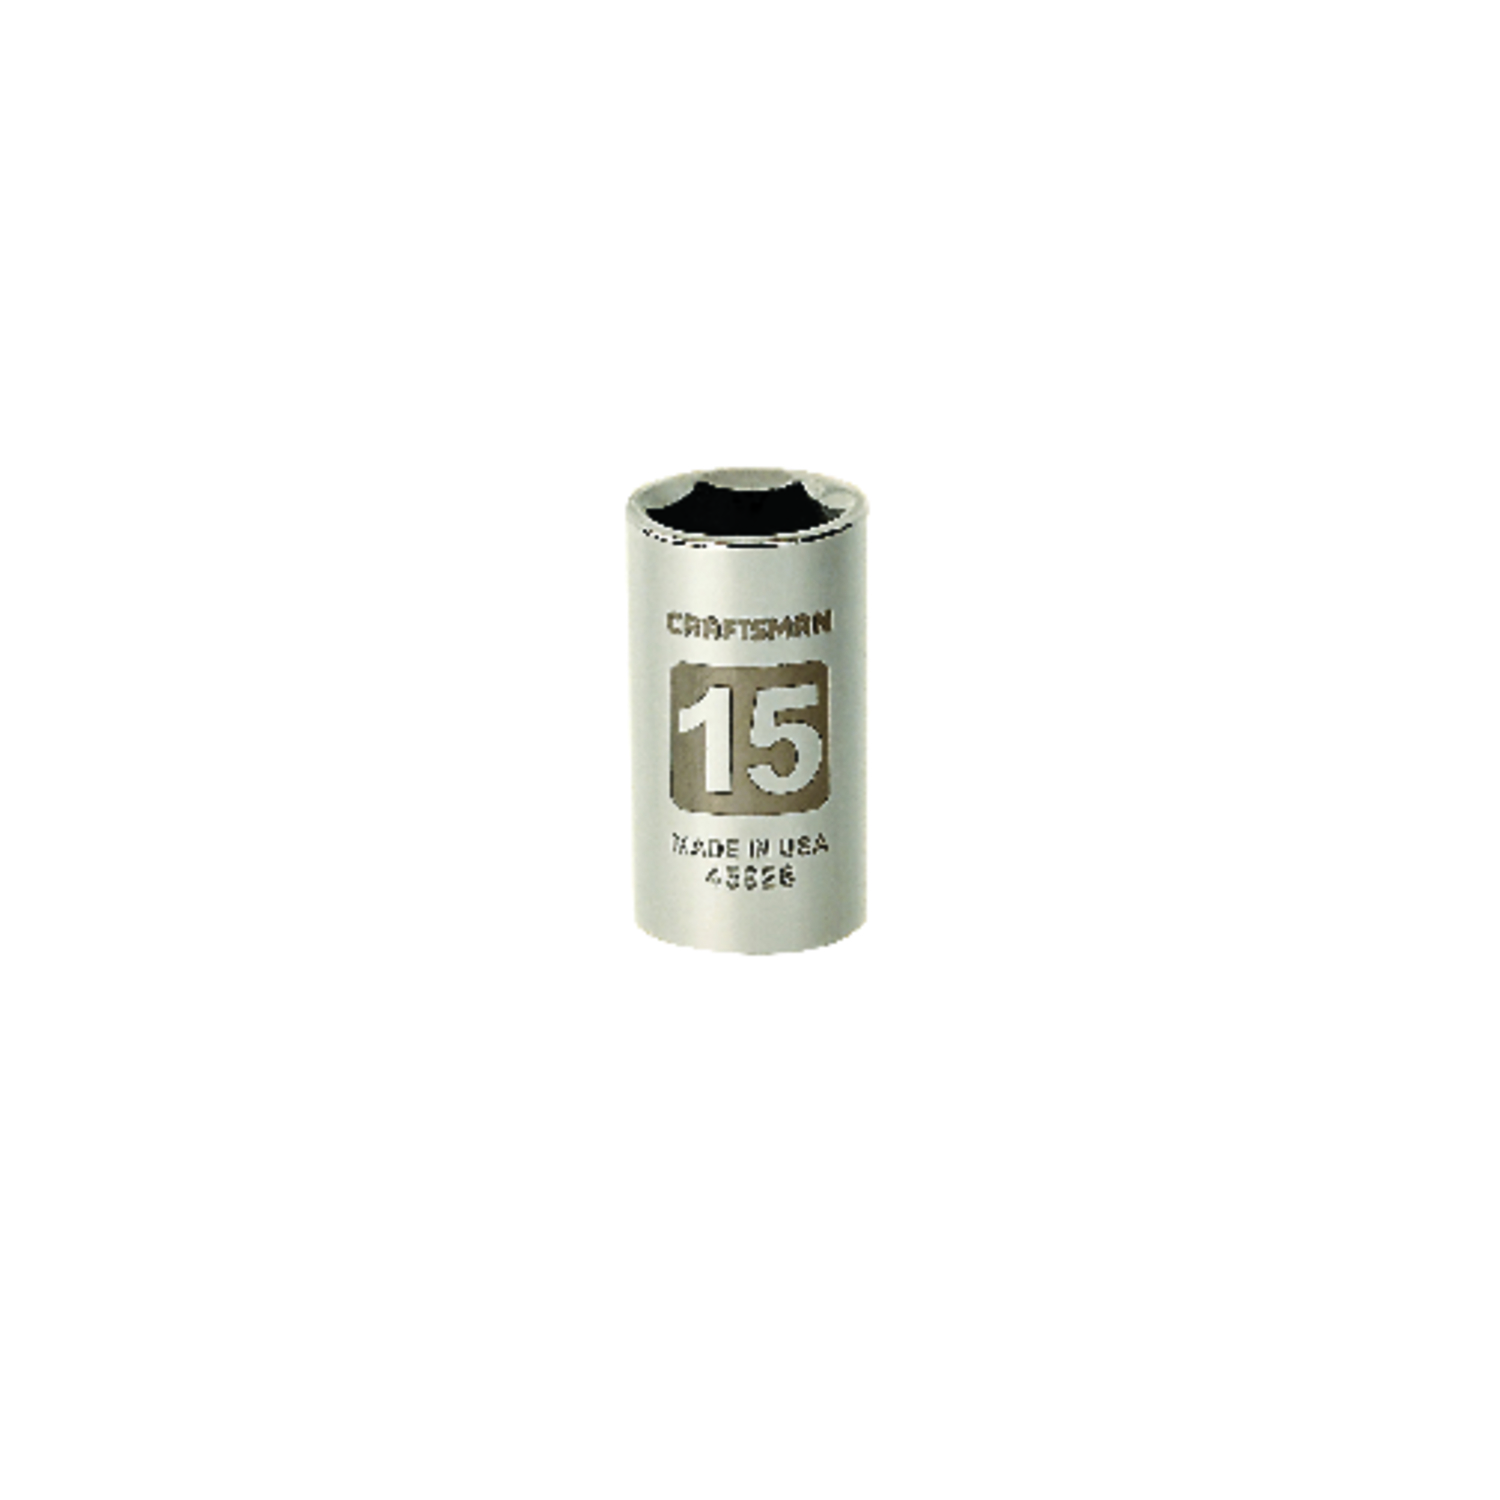 Craftsman  15 mm  x 1/2 in. drive  Metric  6 Point Standard  Socket  1 pc.